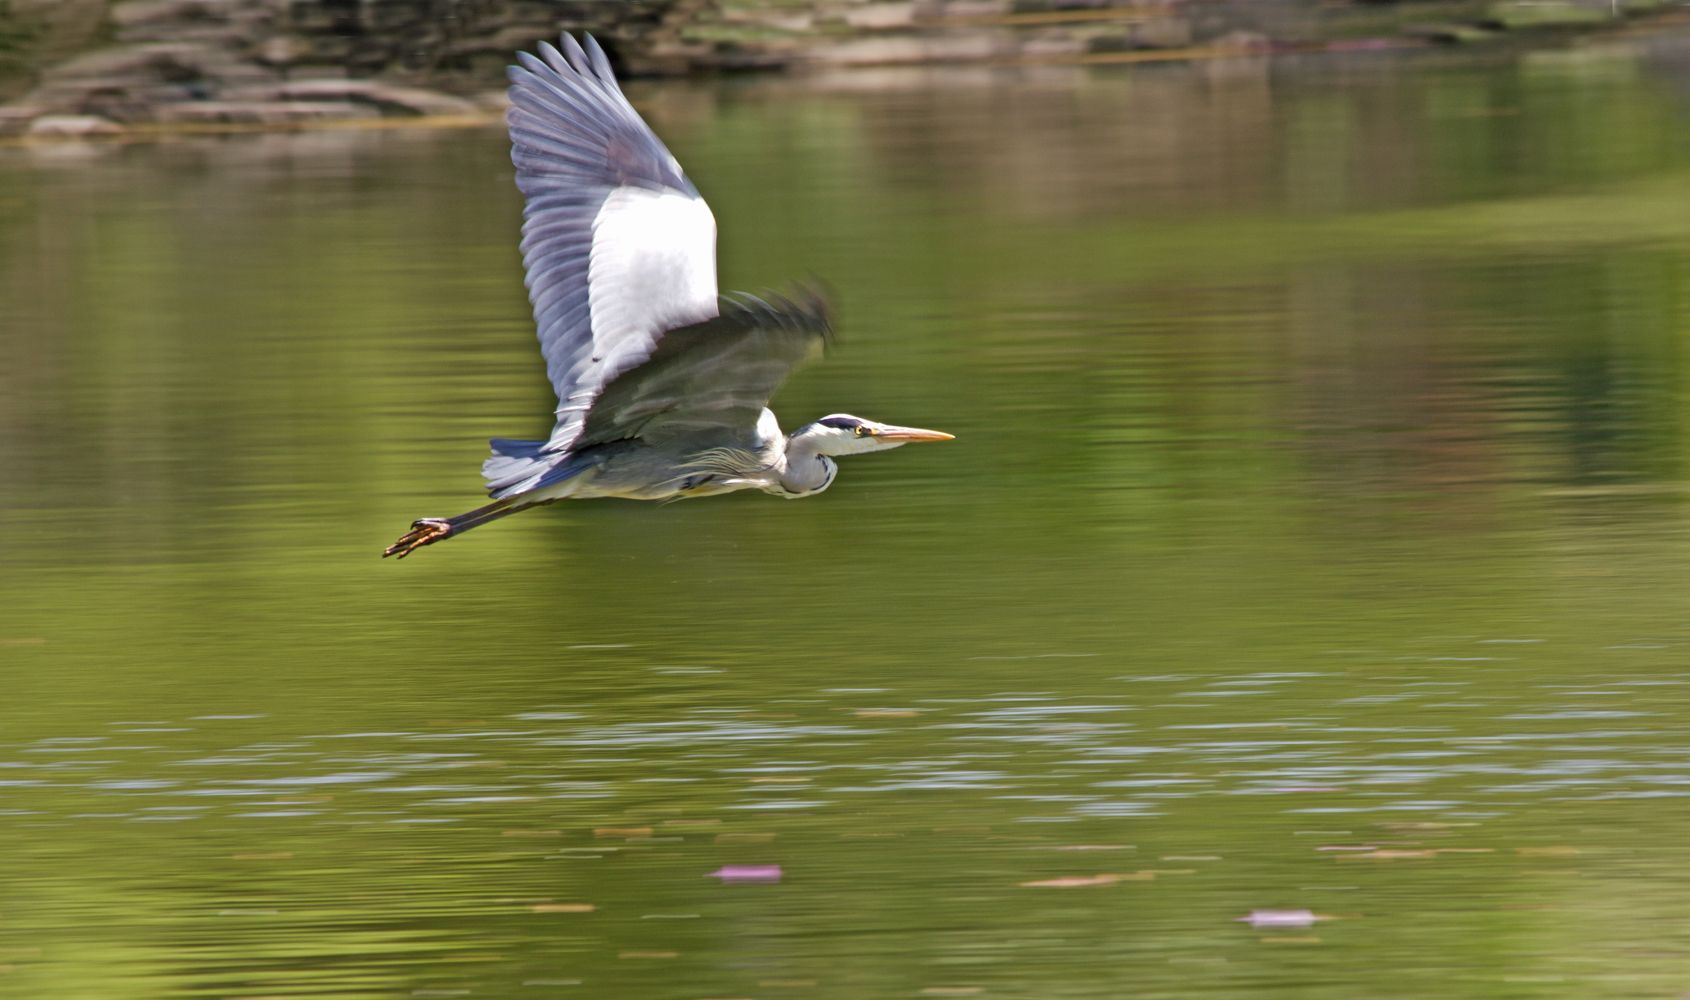 Flying heron aberlady